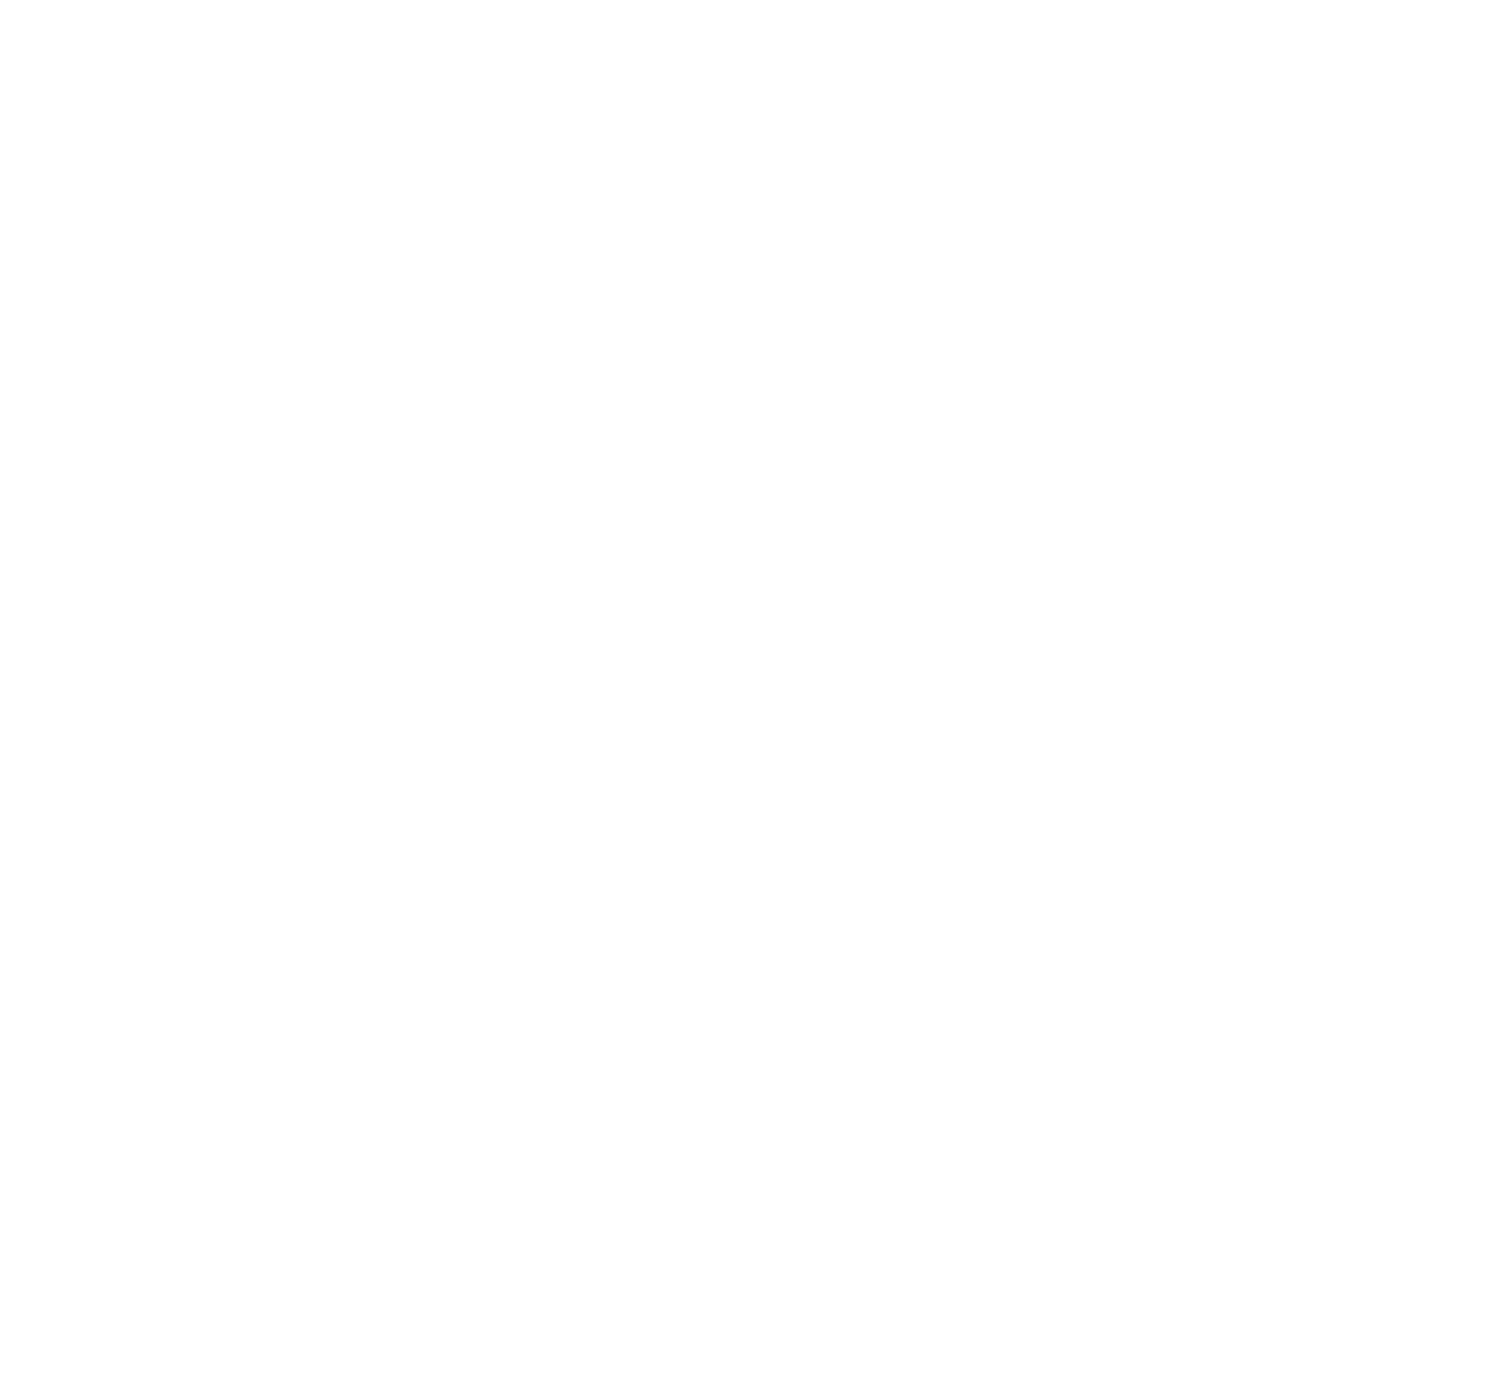 Students Care